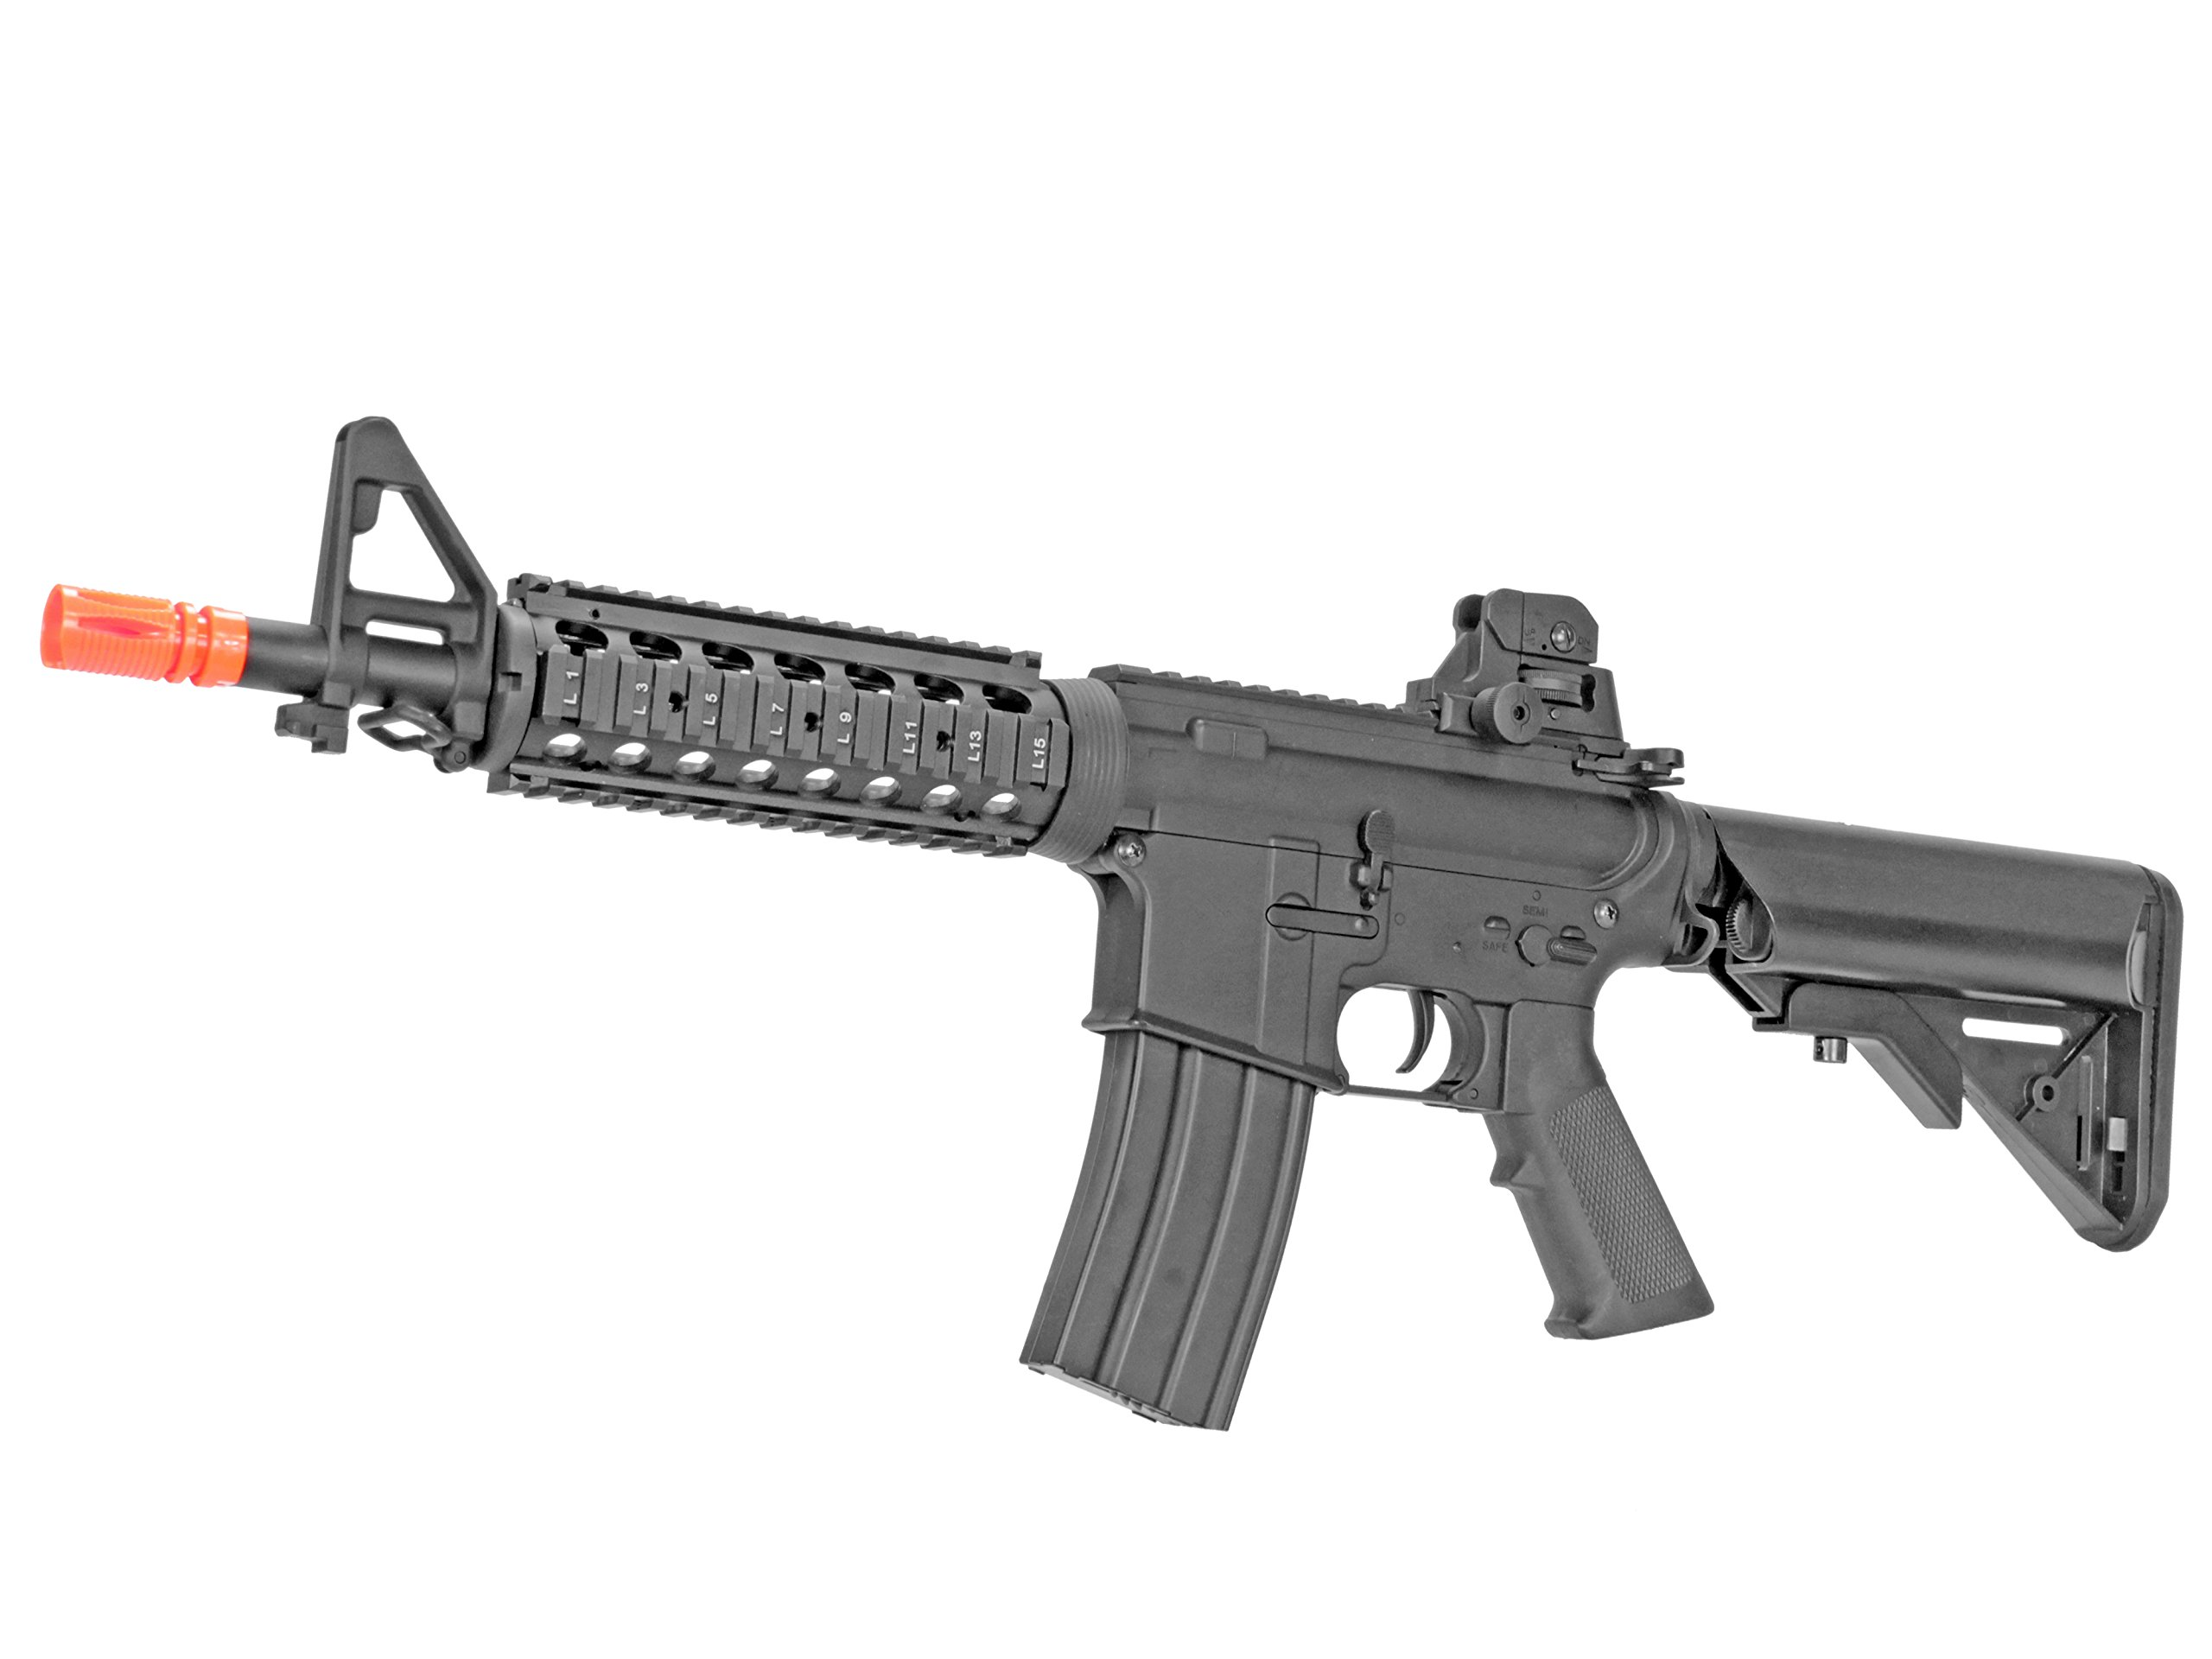 MetalTac Electric Airsoft Gun M4 JG-F6624 with Metal Gearbox Version 2, Full Auto AEG, Upgraded Powerful Spring 420 Fps with .20g BBs